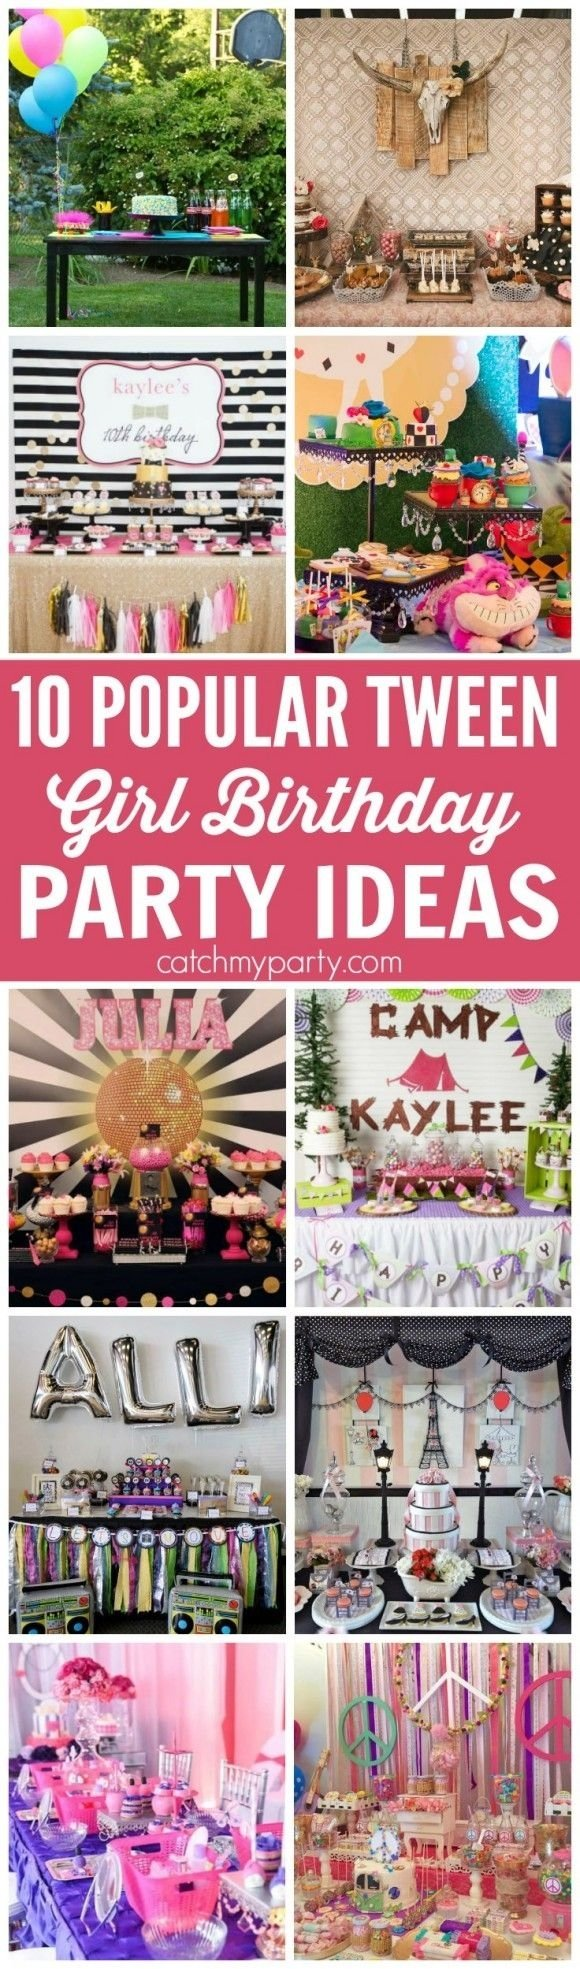 10 Fabulous Fun Party Ideas For Teens 416 best girl birthday party ideas images on pinterest birthday 3 2021